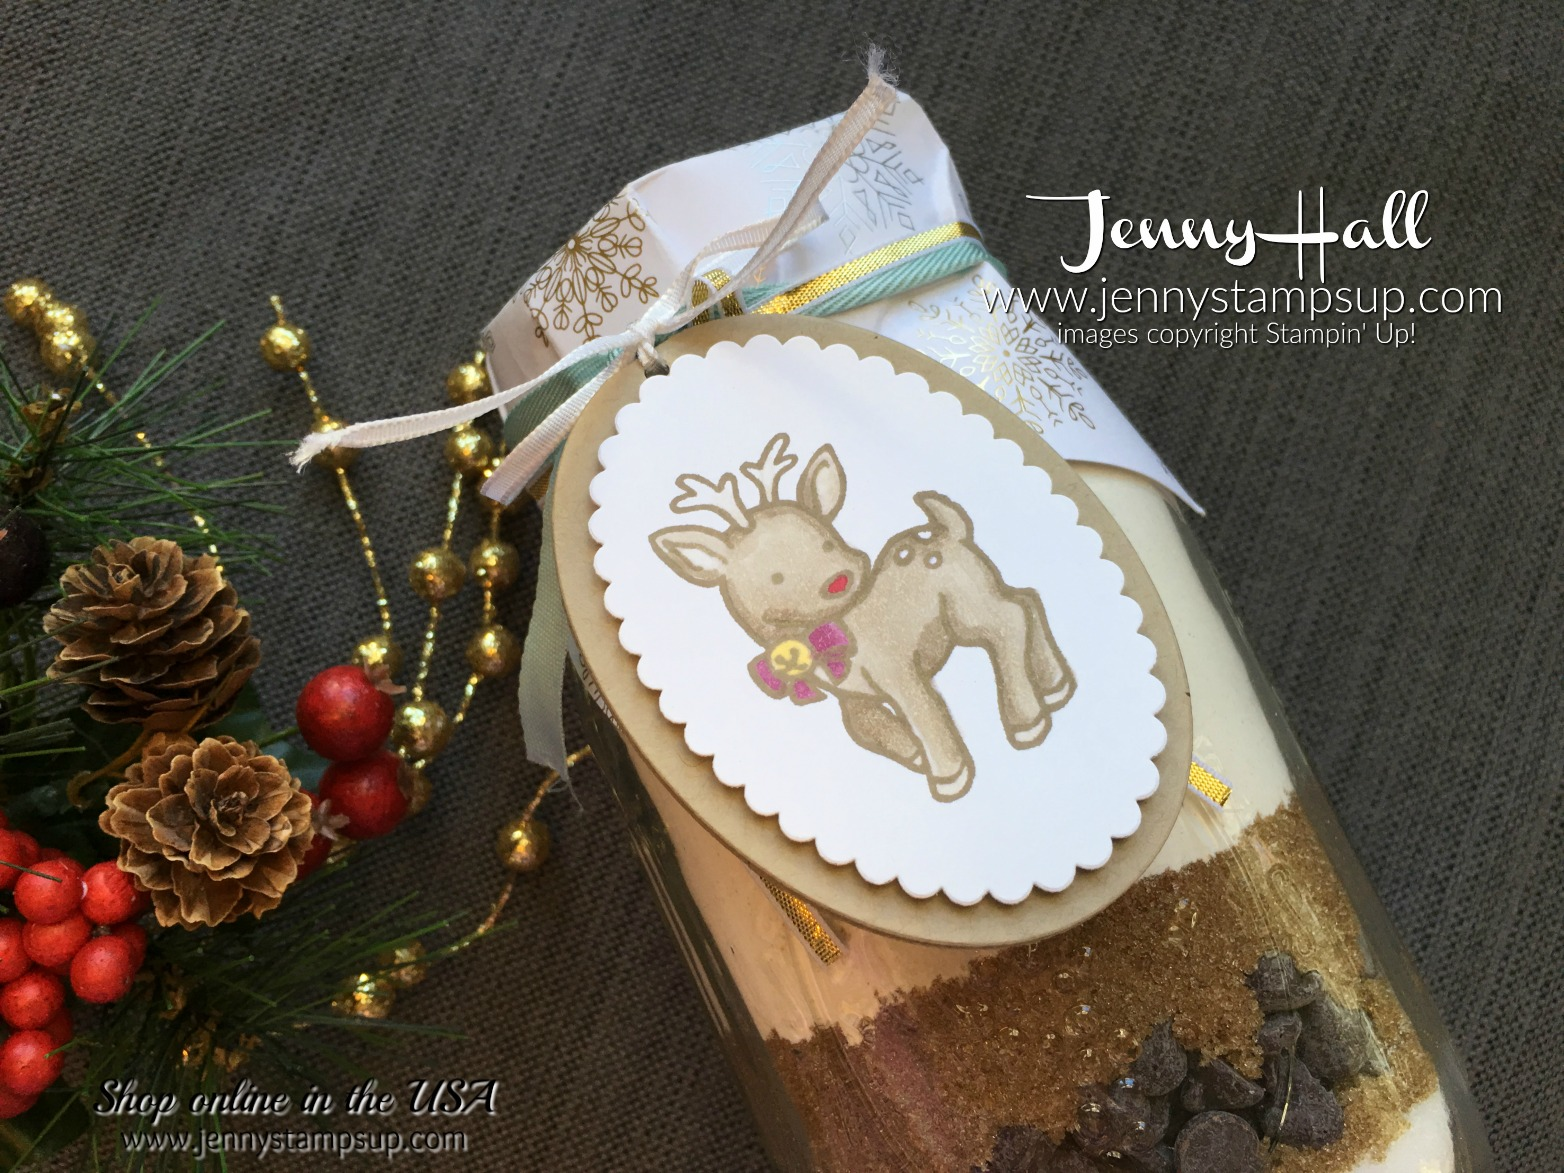 Teacher Christmas Gifts by Jenny Hall at www.jennyhalldesign.com for cardmaking, scrapbooking, papercraft gift giving, video tutorials and more!